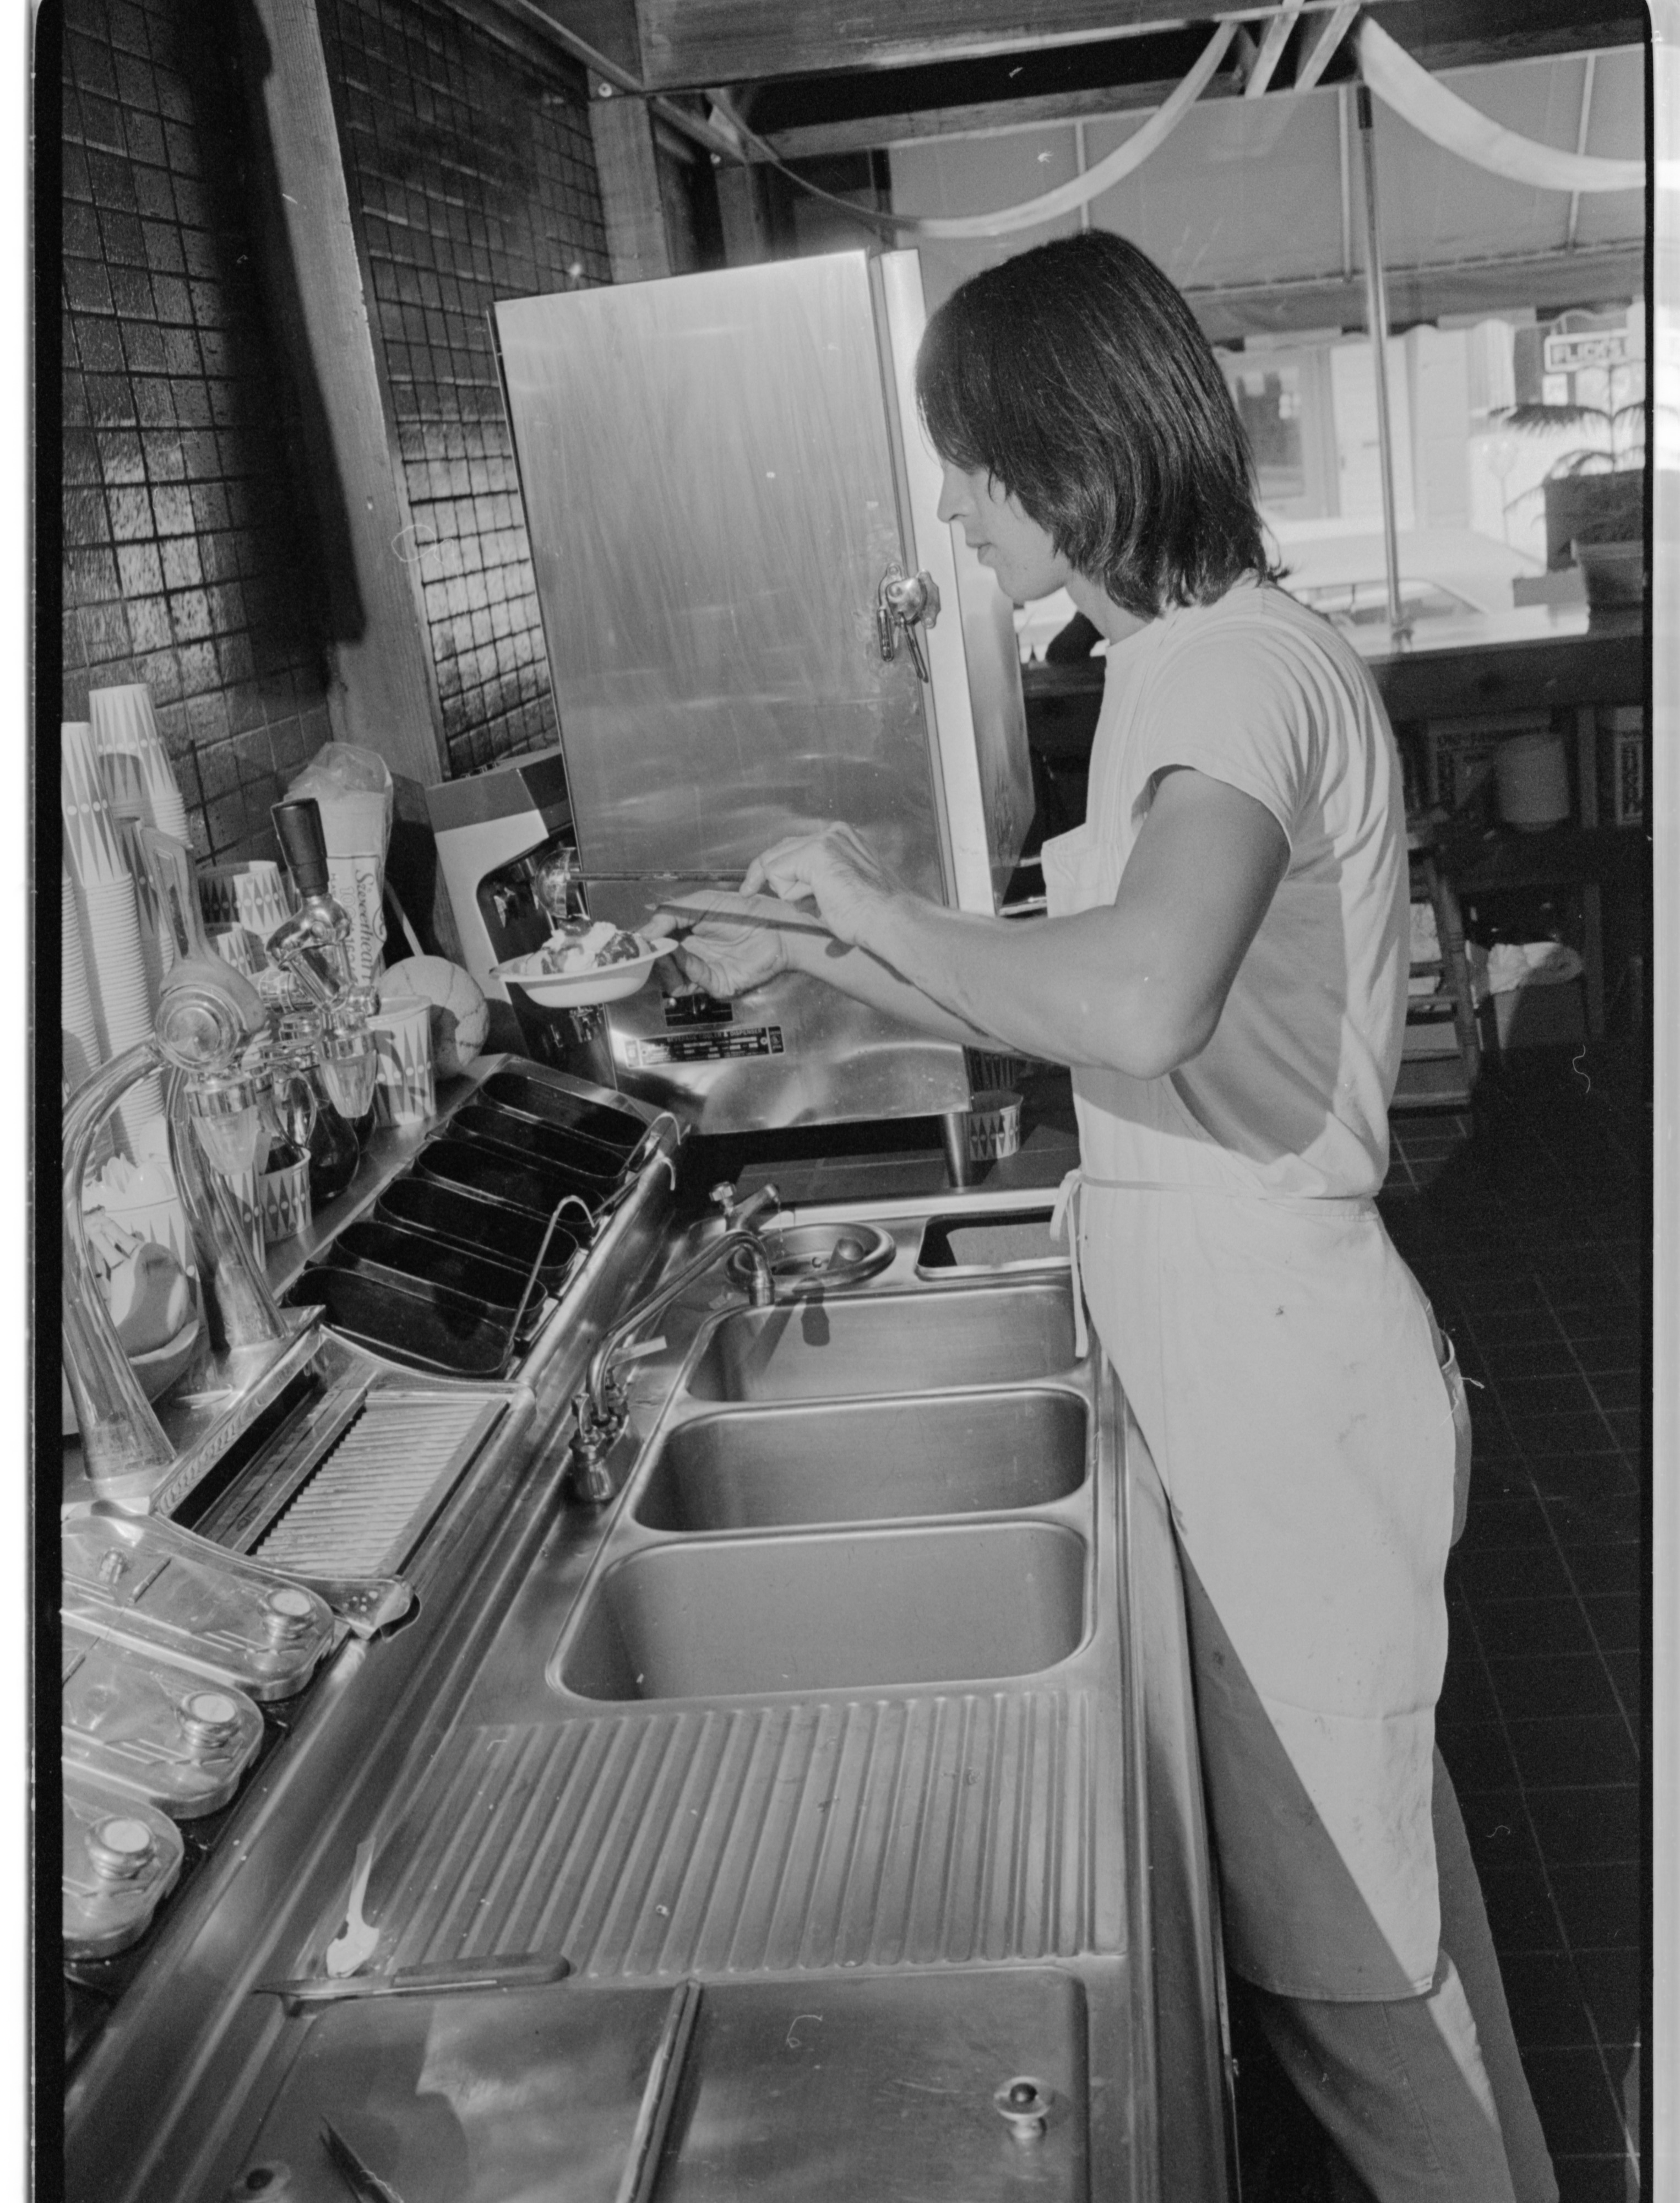 Building A Sundae at Mountain High Ice Cream Parlour, August 1974 image